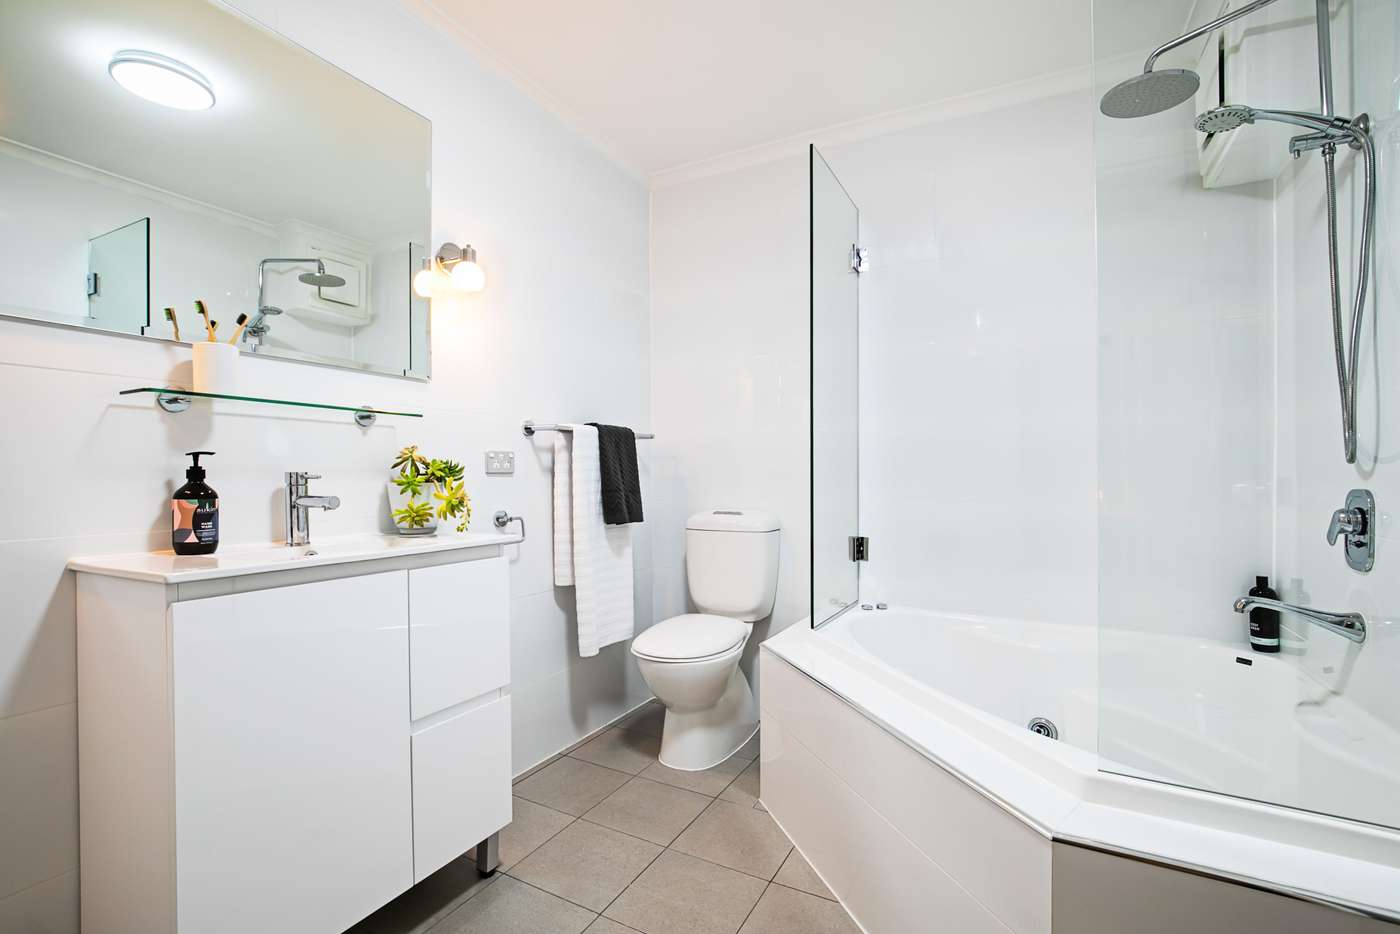 Sixth view of Homely apartment listing, 4/33-35 Reynolds Street, Cremorne NSW 2090